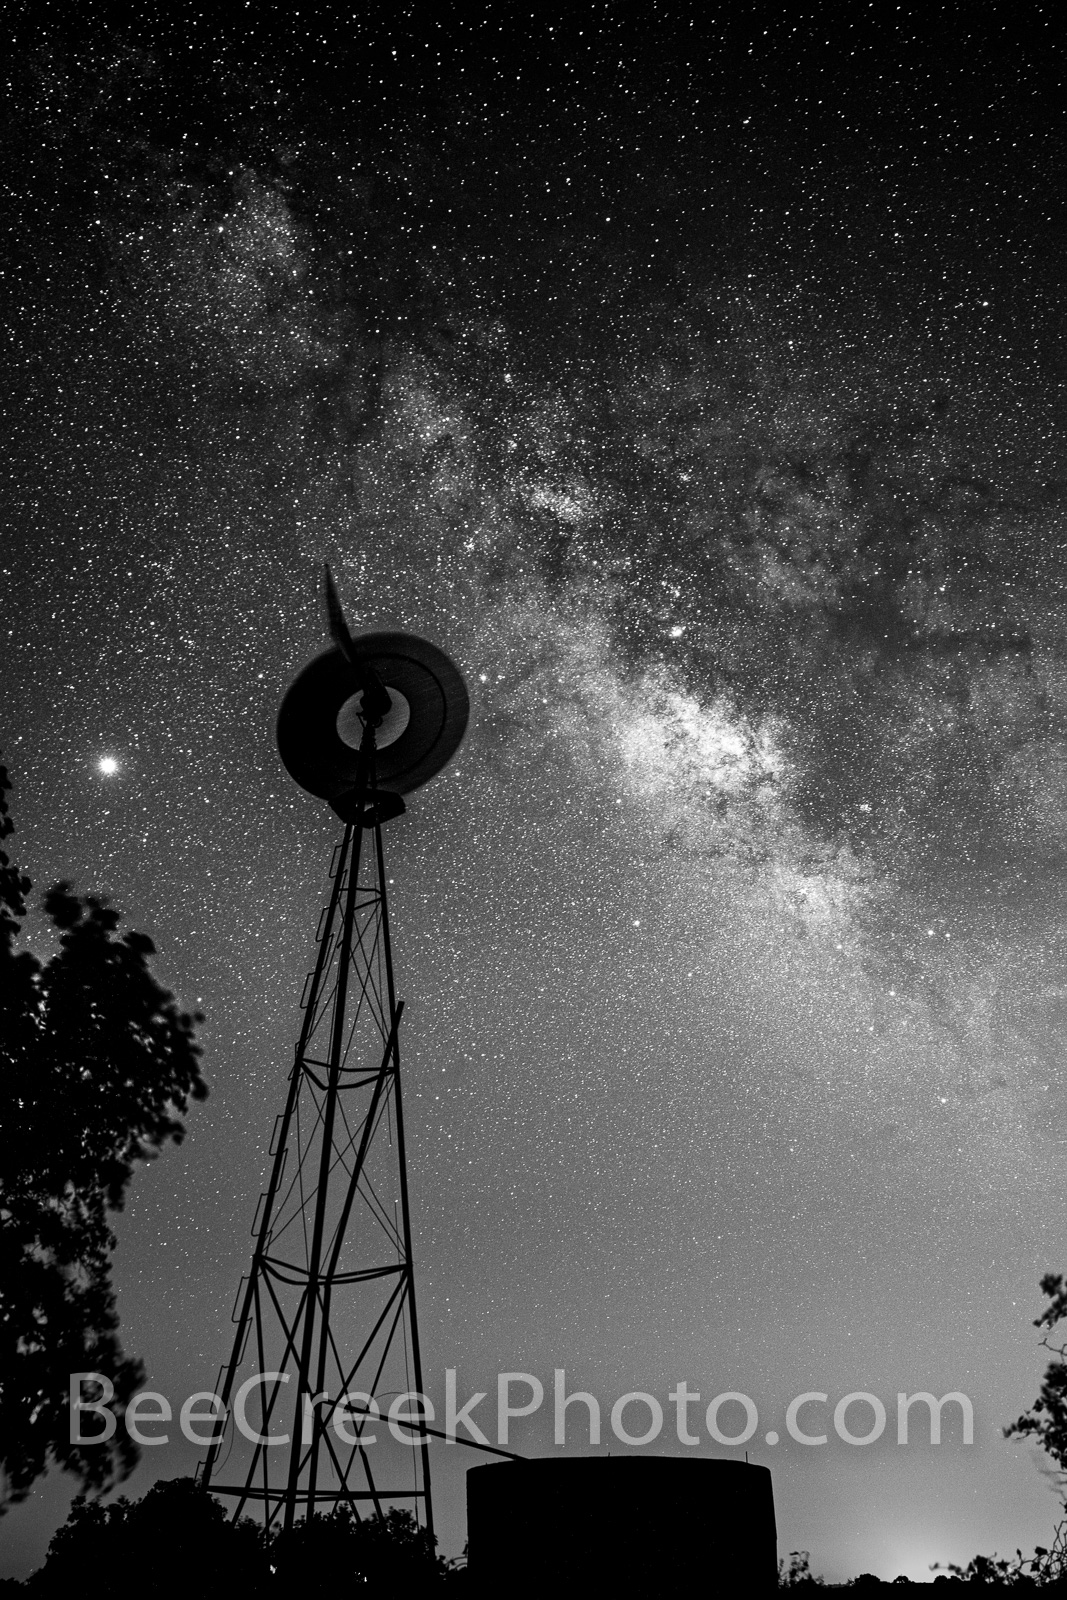 Texas Windmill with Milky Way B W Vertical - We captured this Texas windmill with the water tank in silouette between some trees...